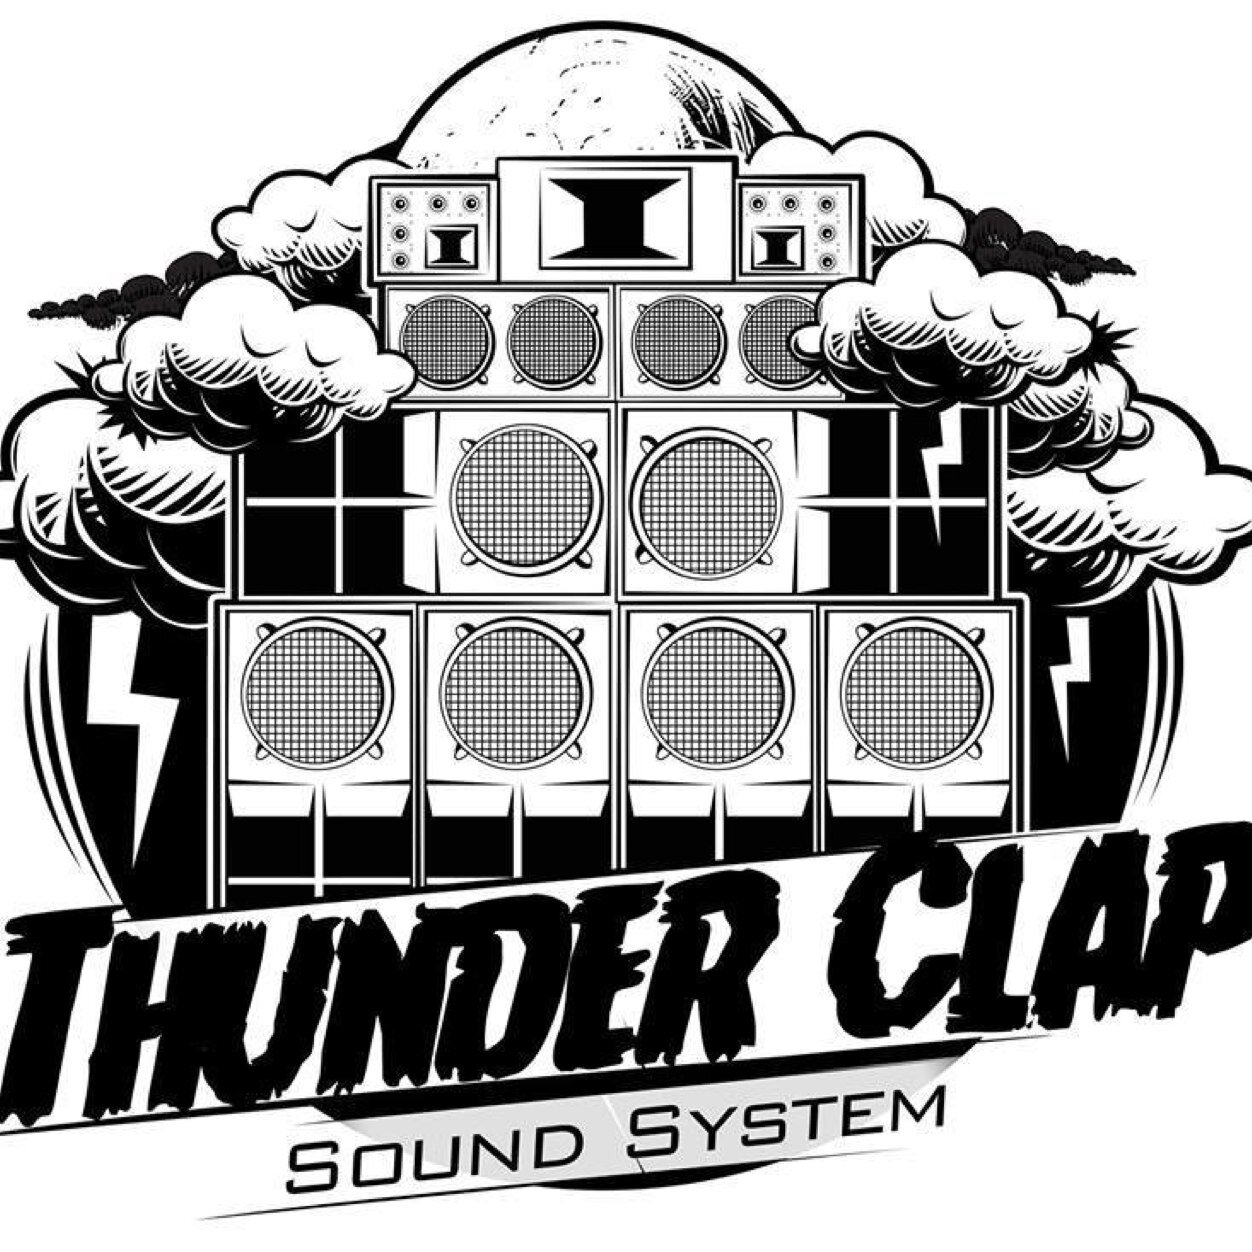 sound system clipart. thunder clap sound system clipart